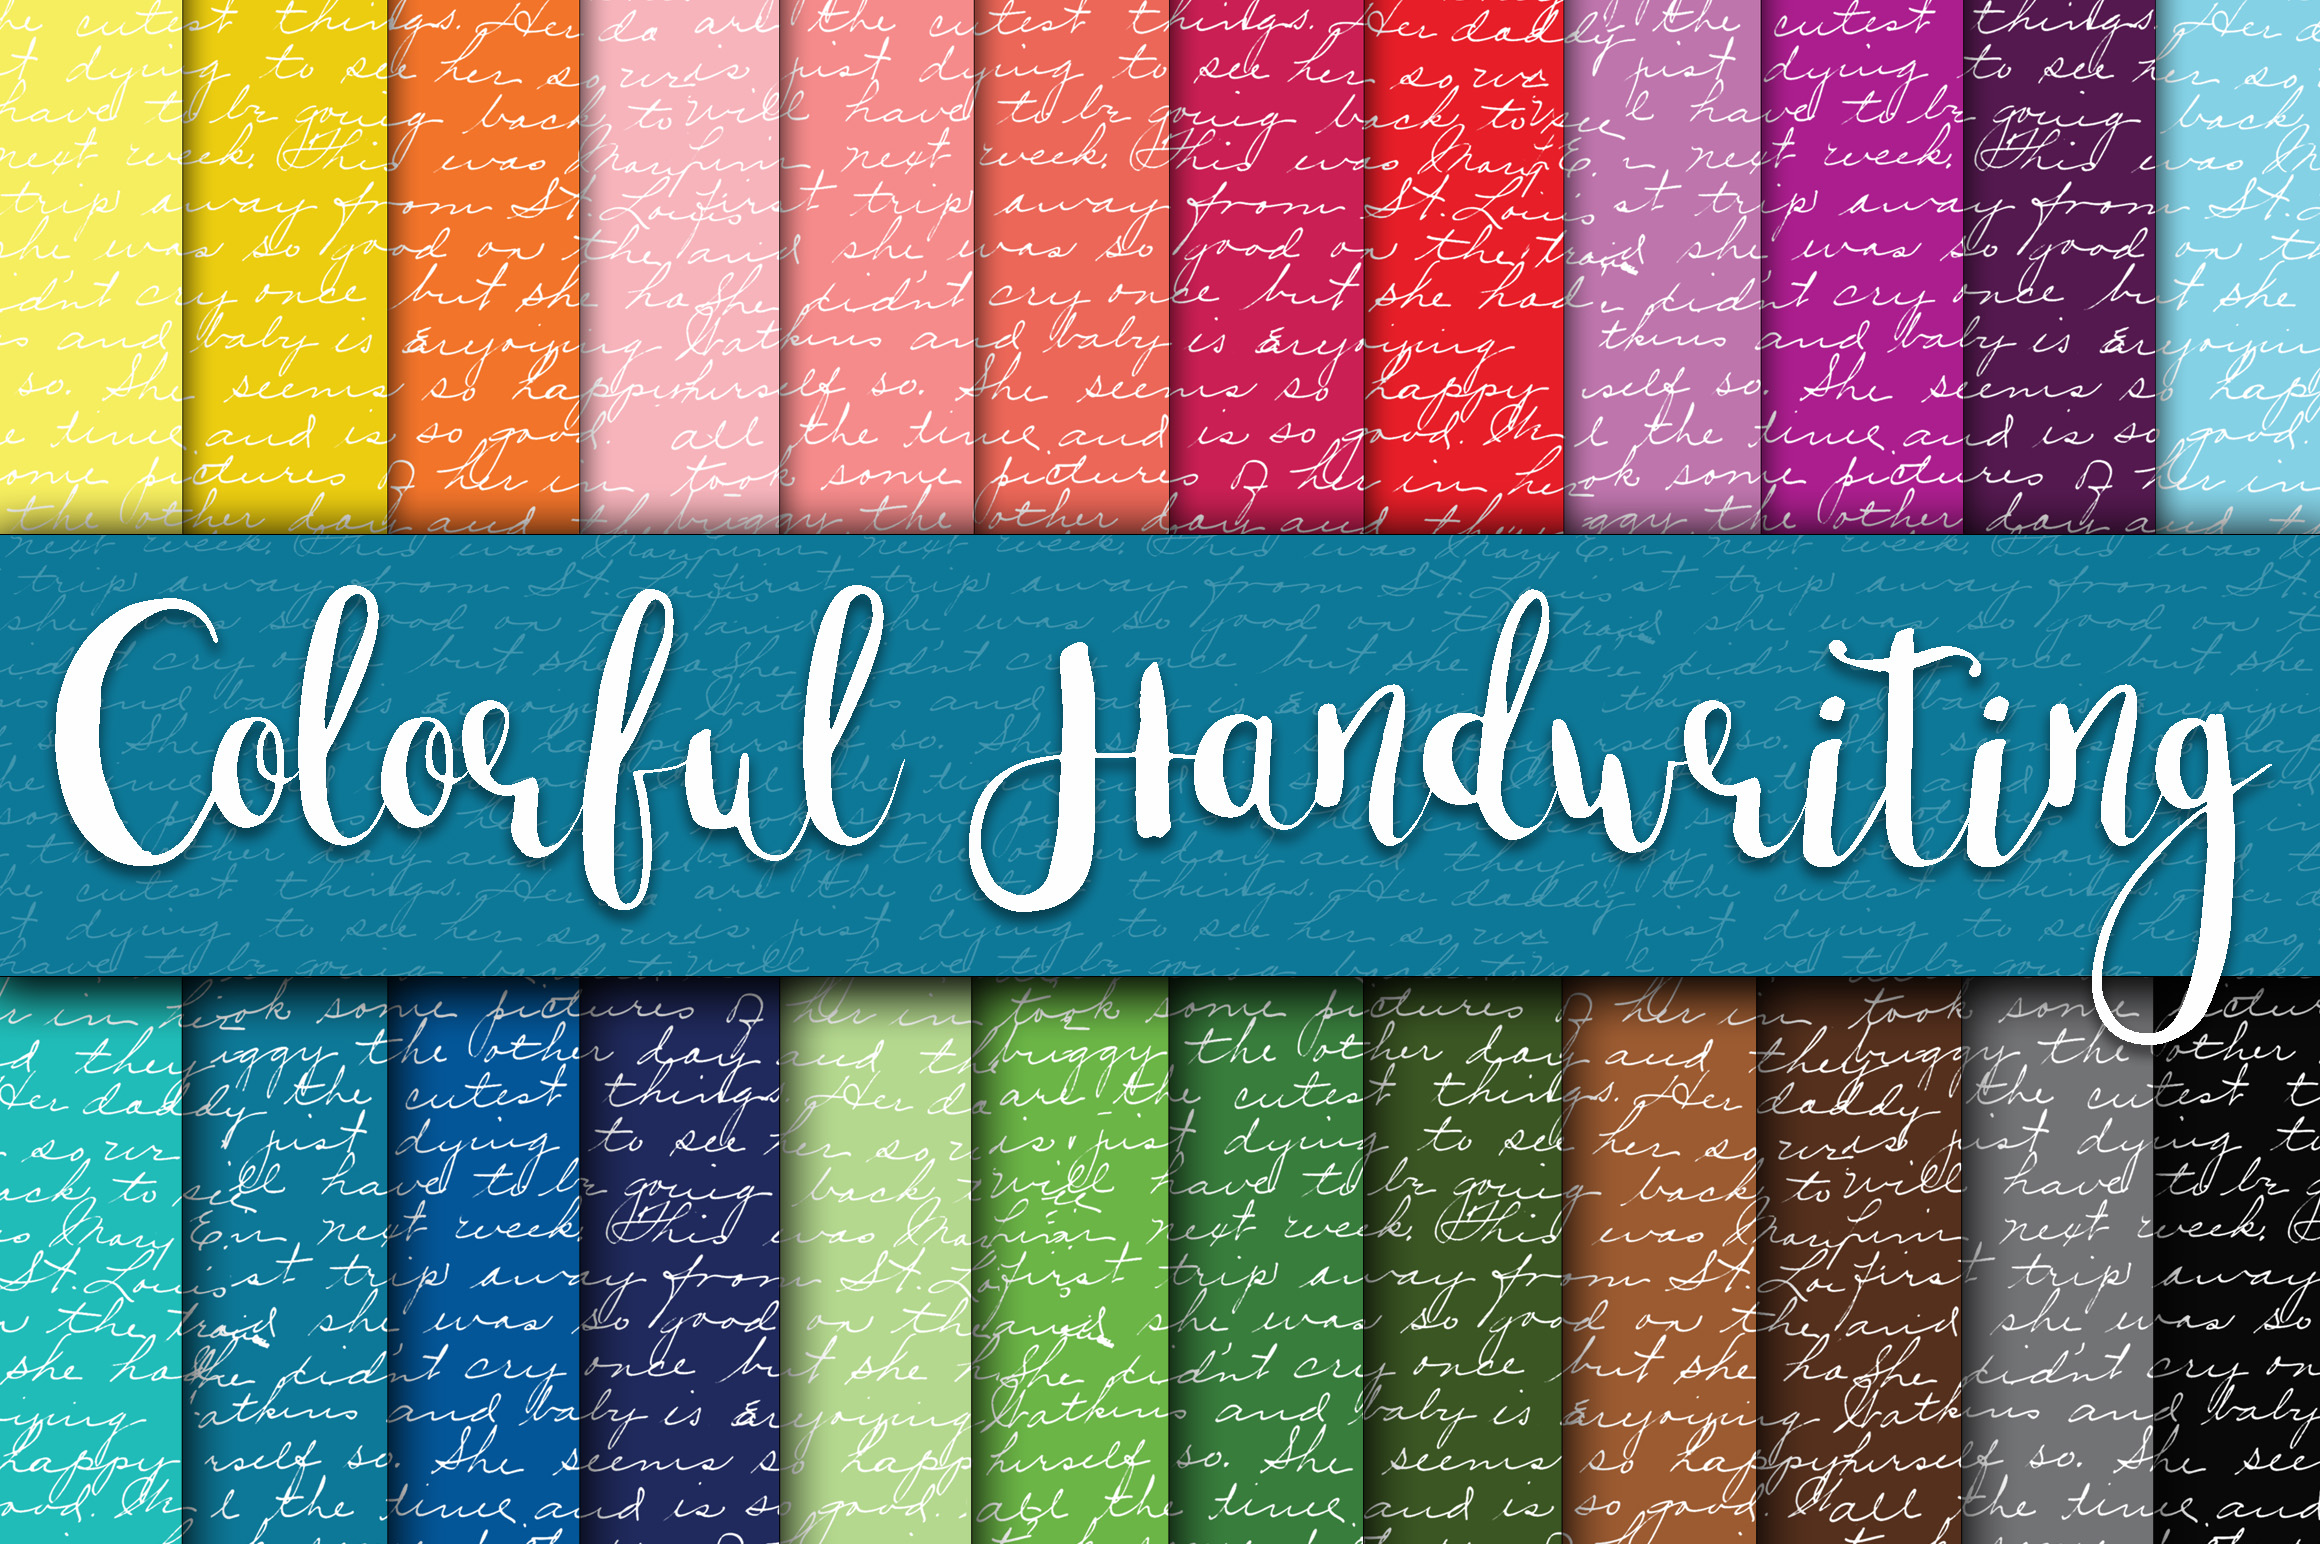 Colorful Handwriting Digital Paper Graphic Backgrounds By oldmarketdesigns - Image 1